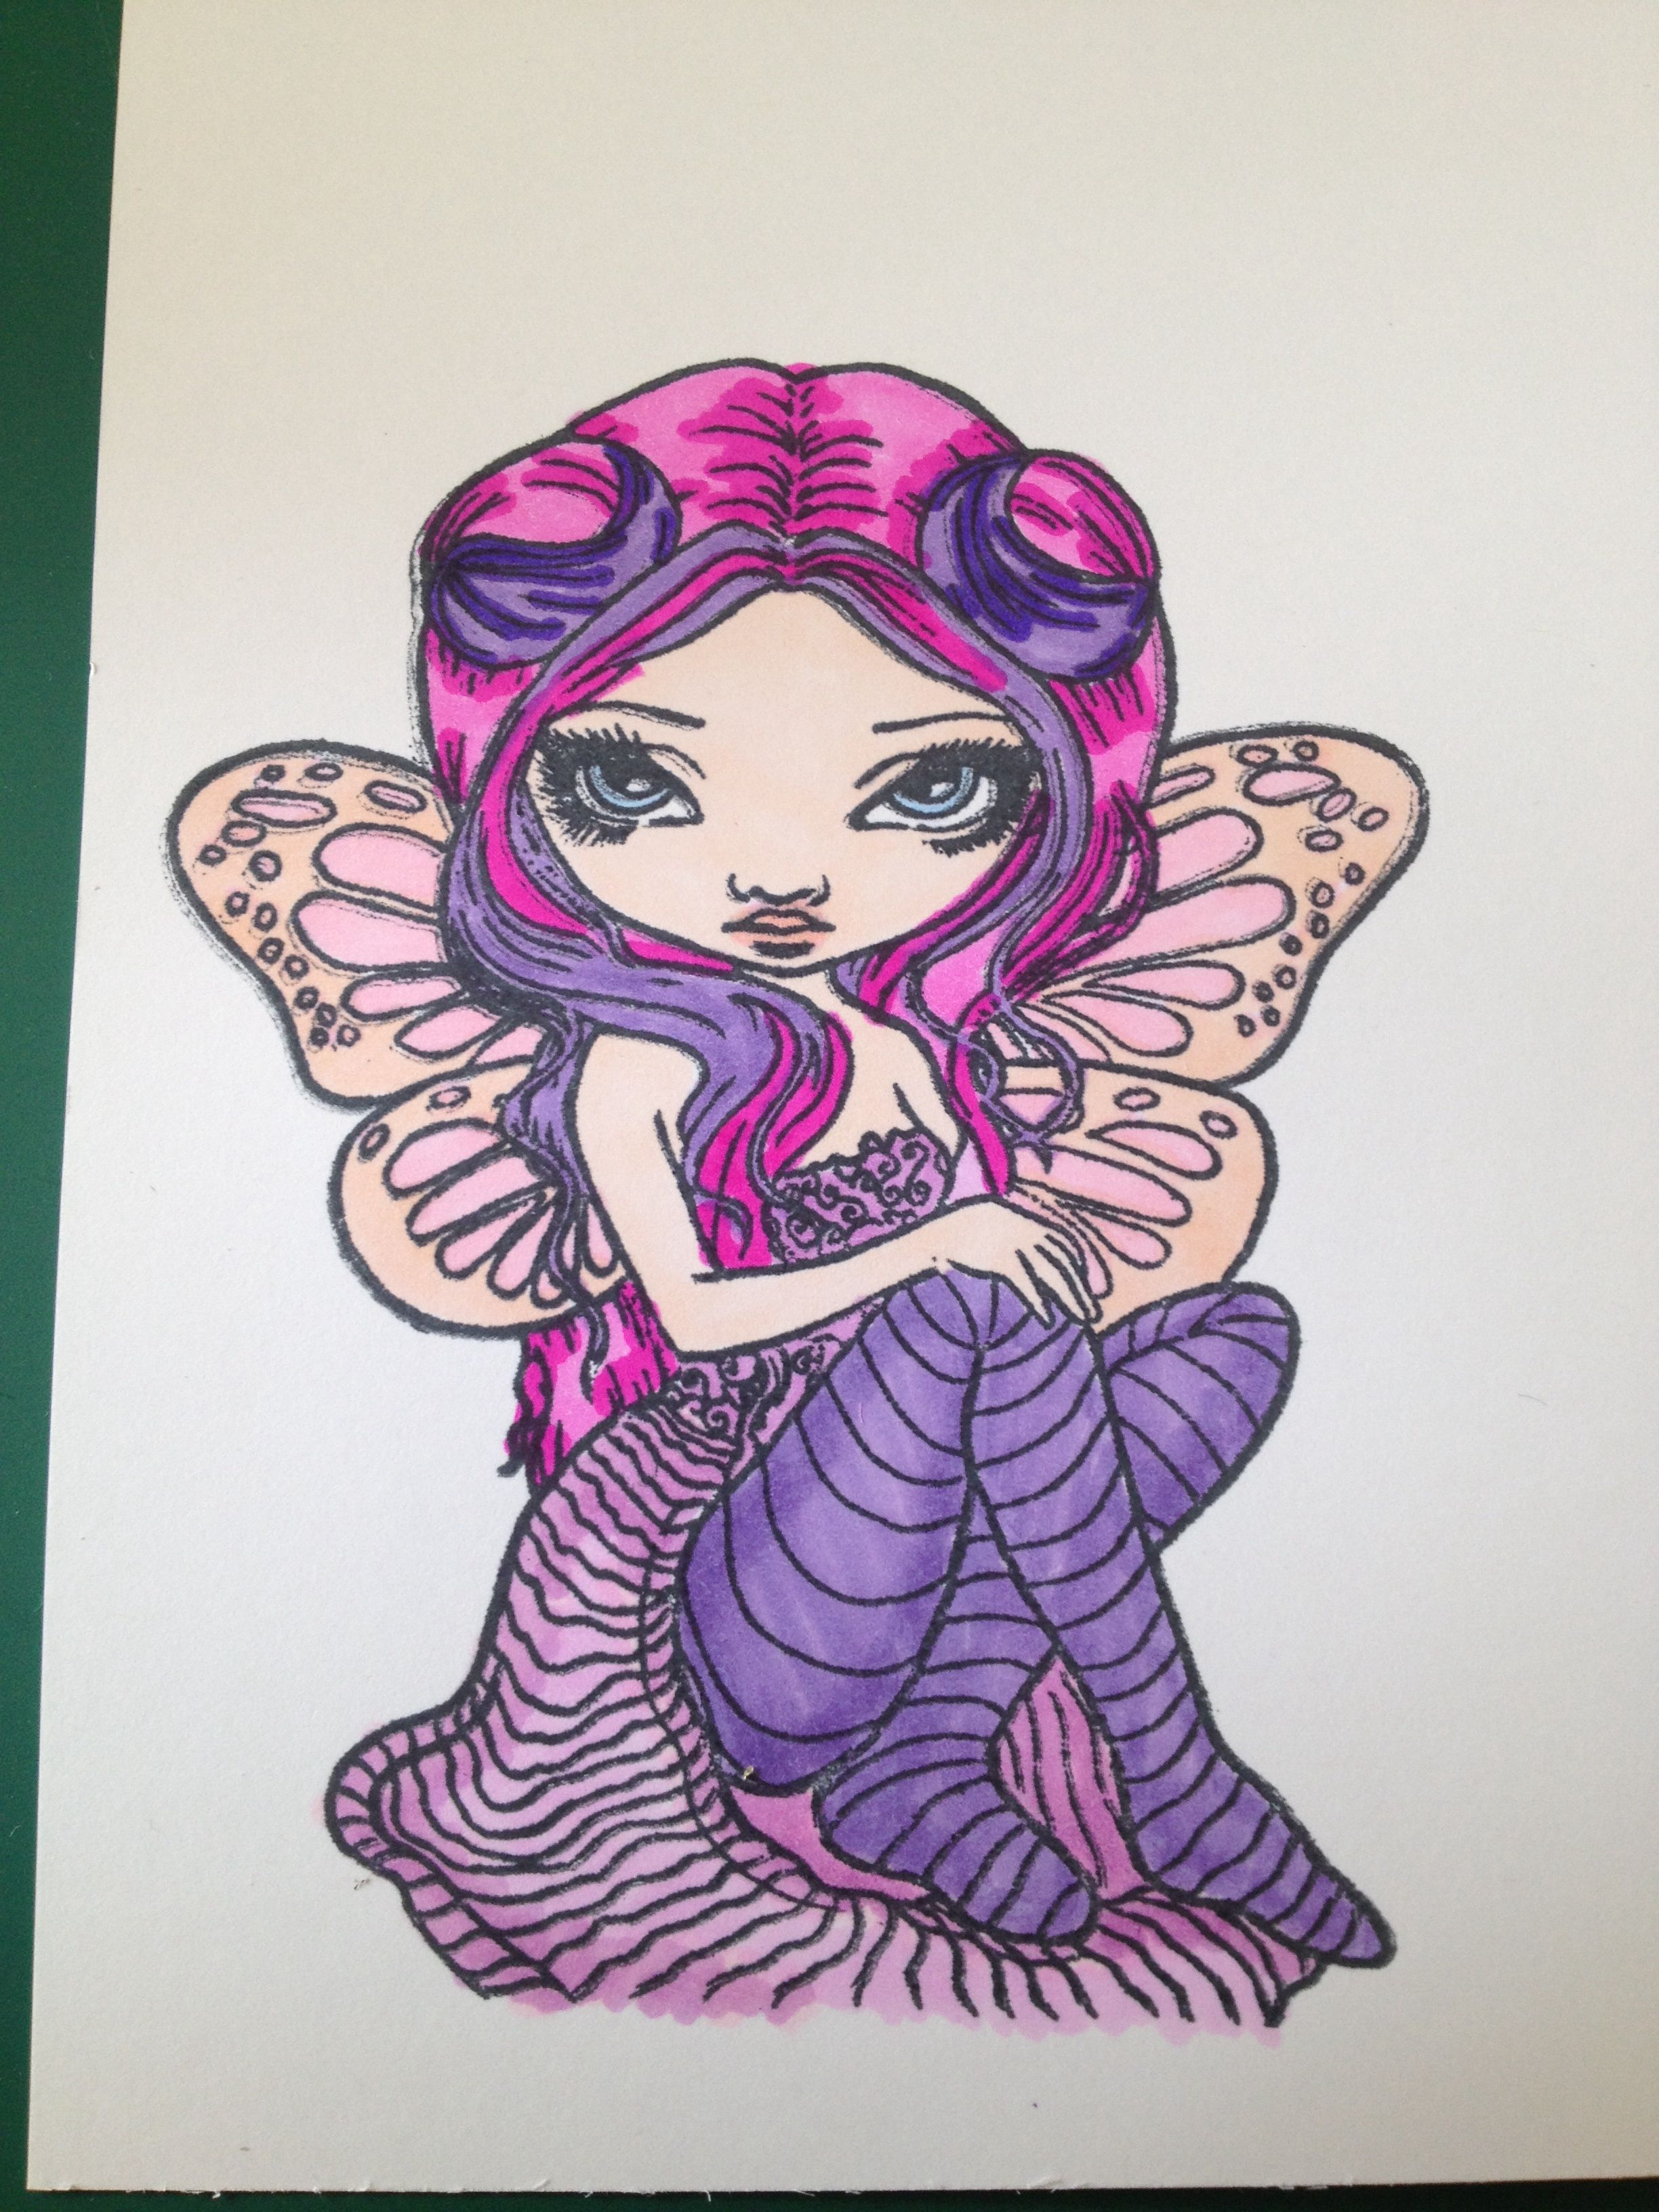 Pink lighting - jasmine becket Griffith (With images) | Fairy art, Halloween coloring book ...